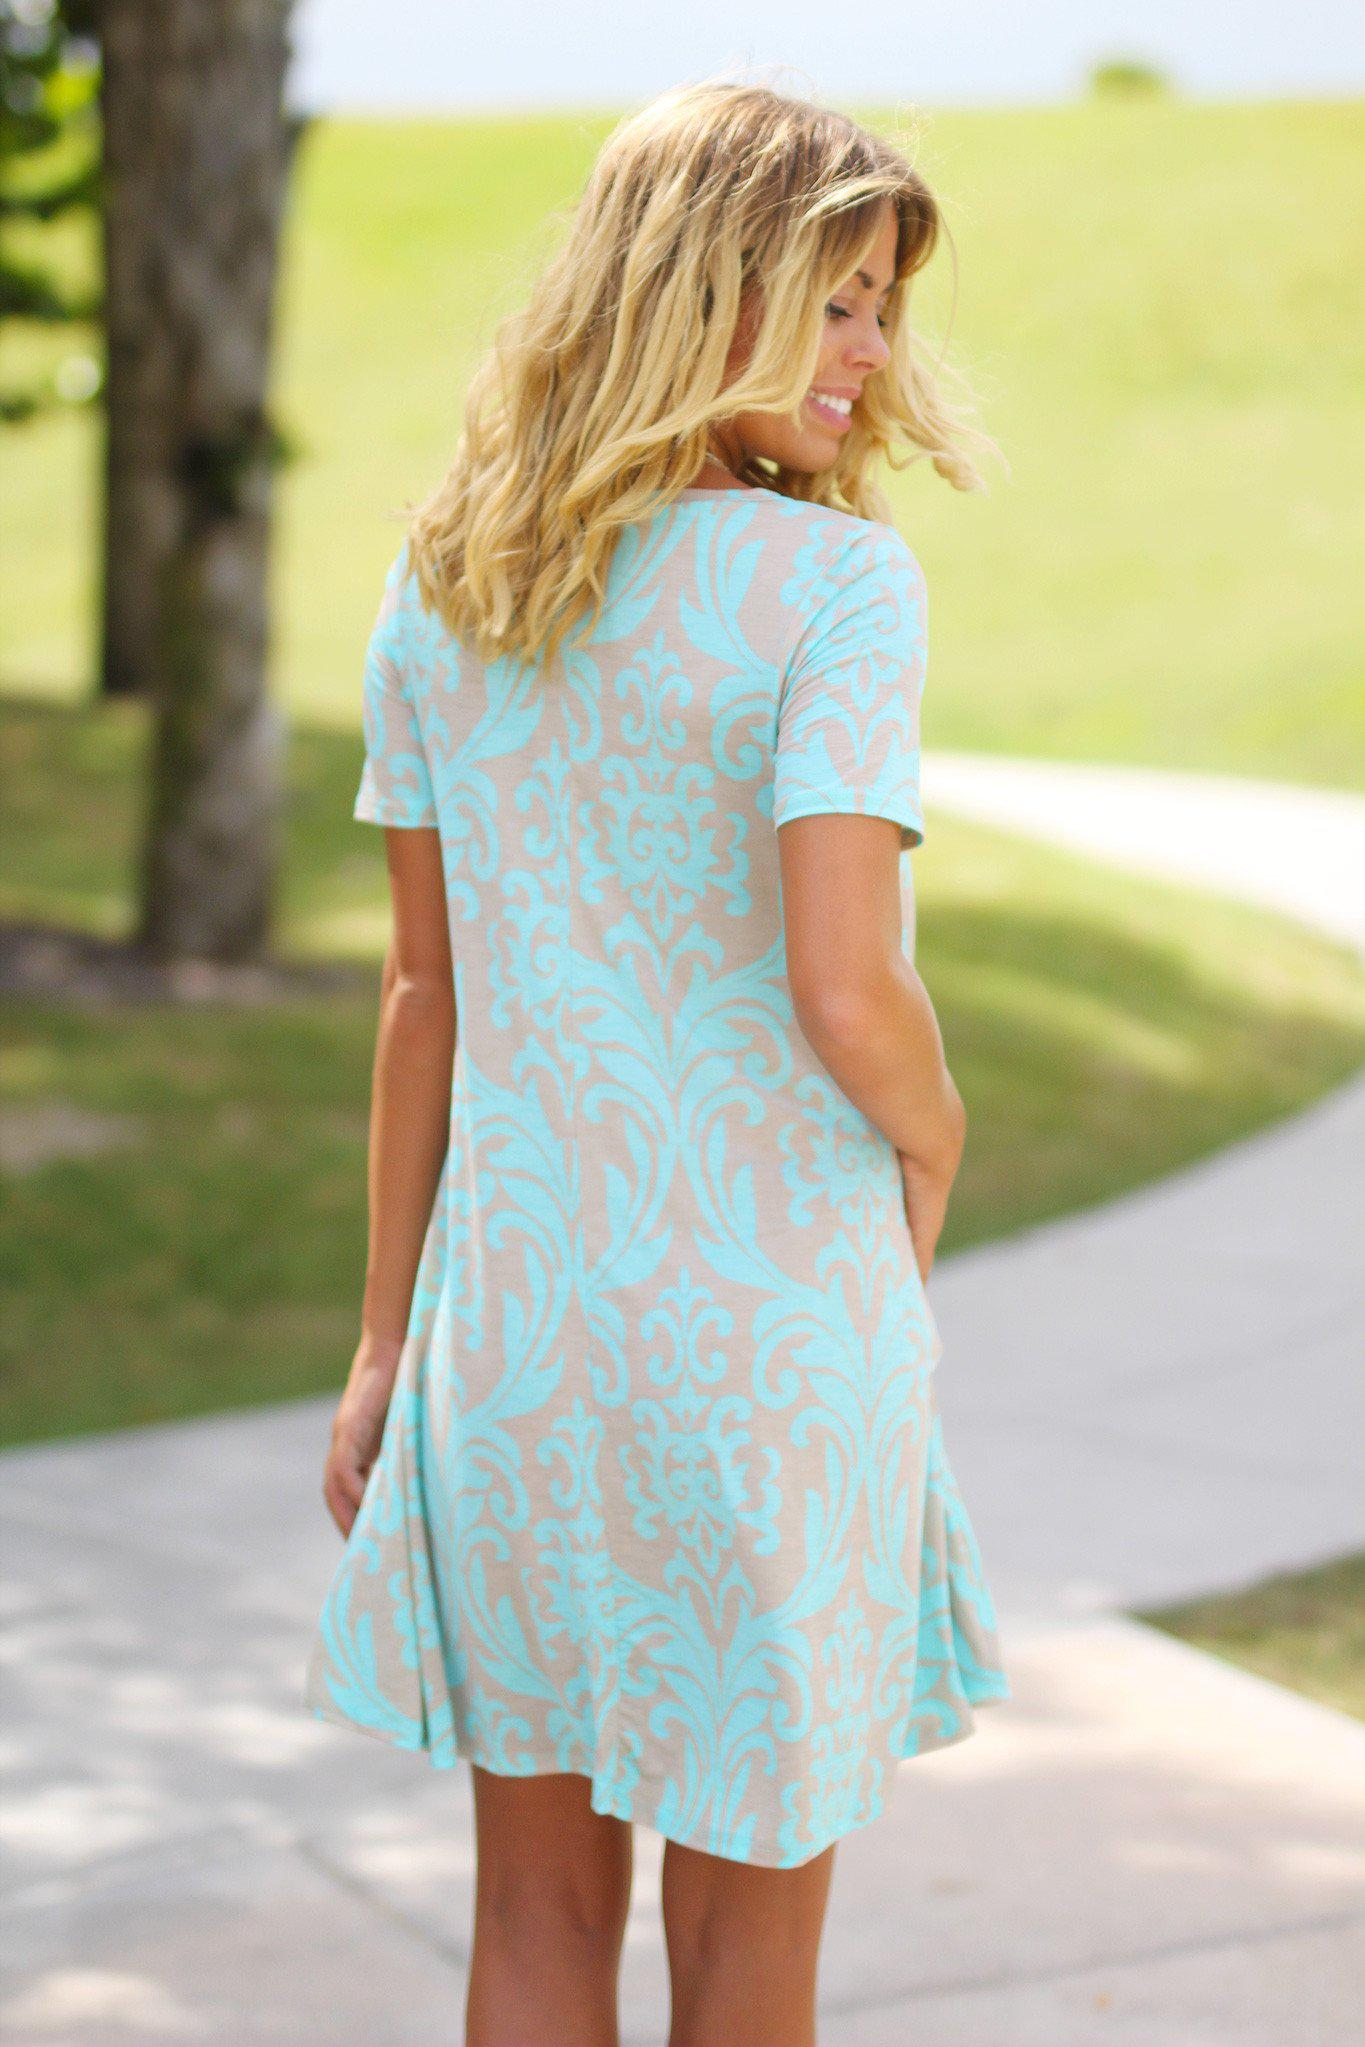 Mint and Taupe Printed Short Dress with Pockets